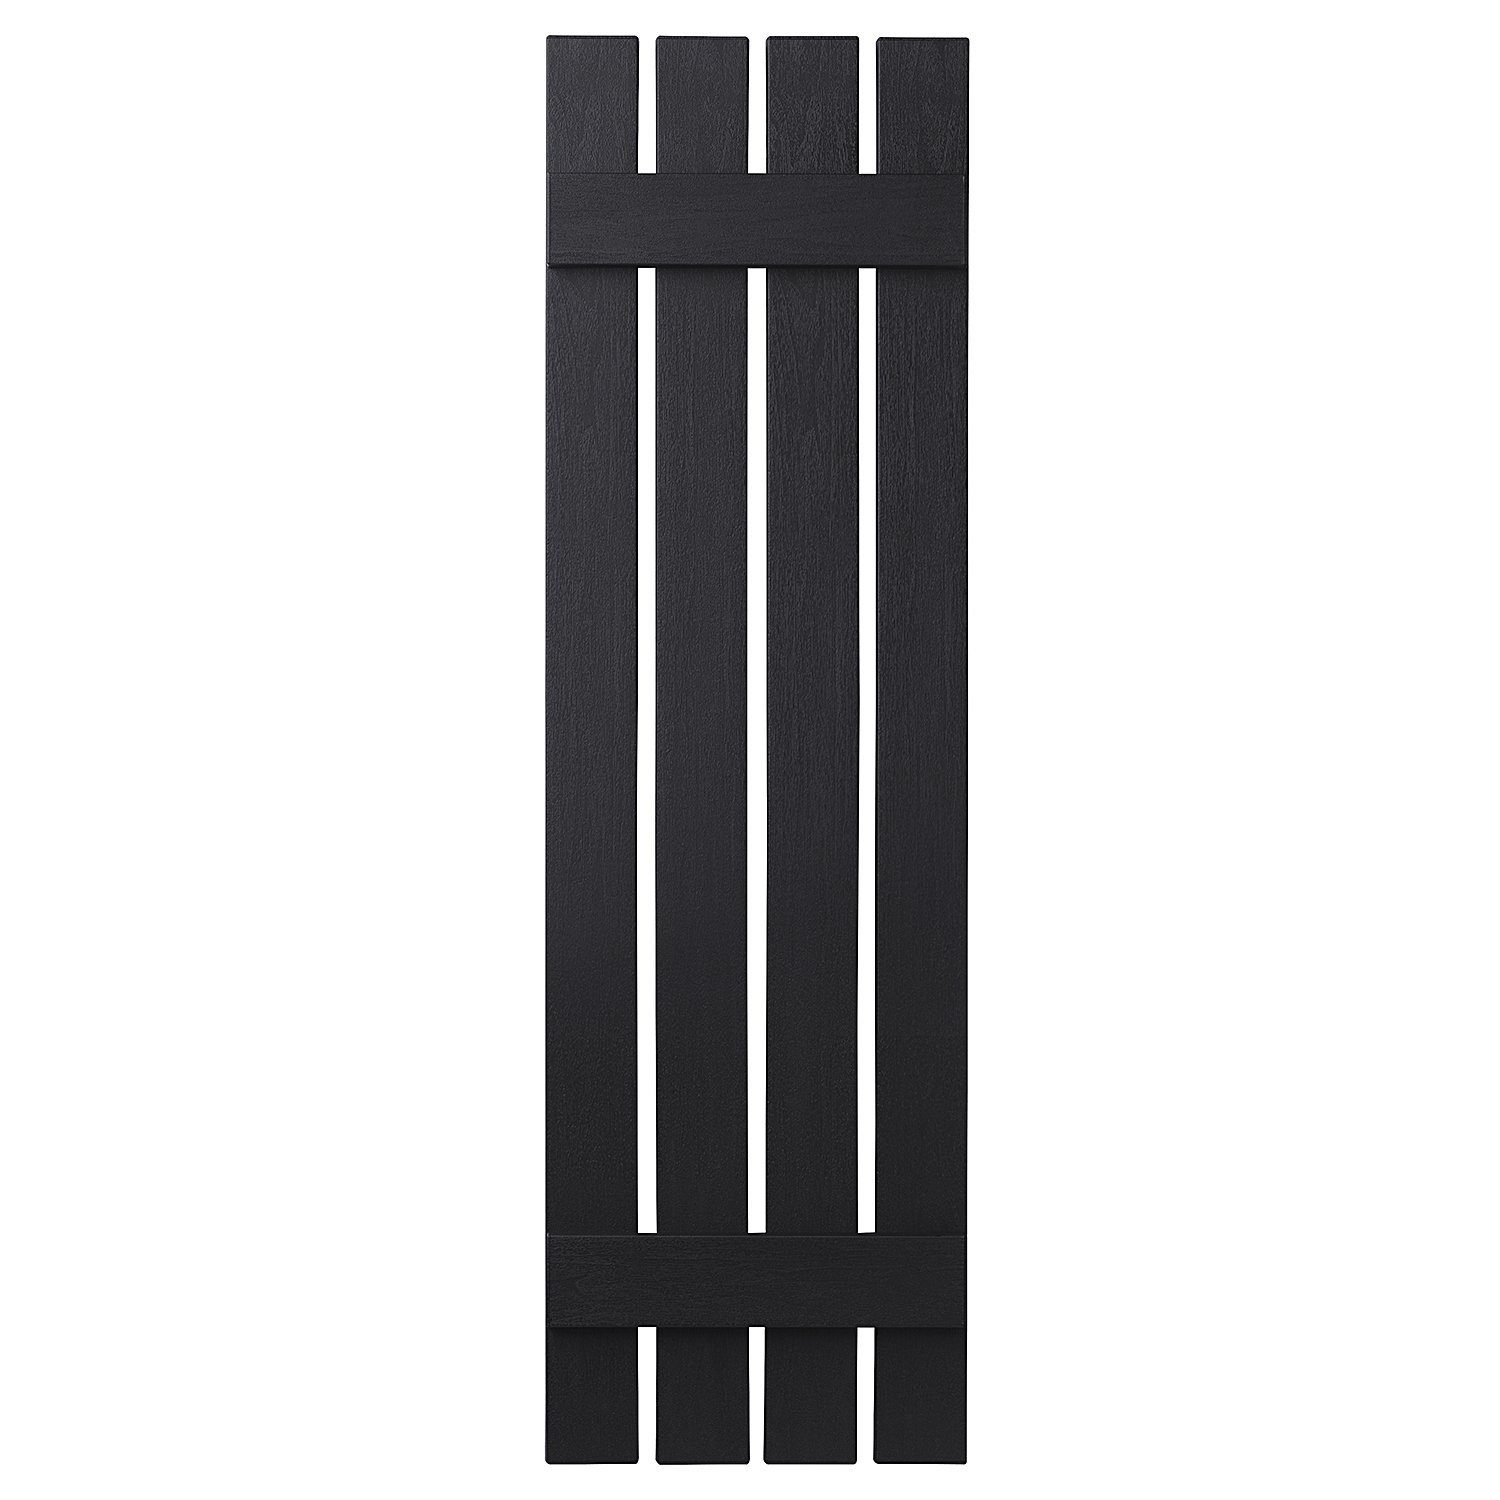 PlyGem Shutters and Accents VIN401651 33 4 Open Board and Batten Shutter, Black by PlyGem Shutters and Accents (Image #1)